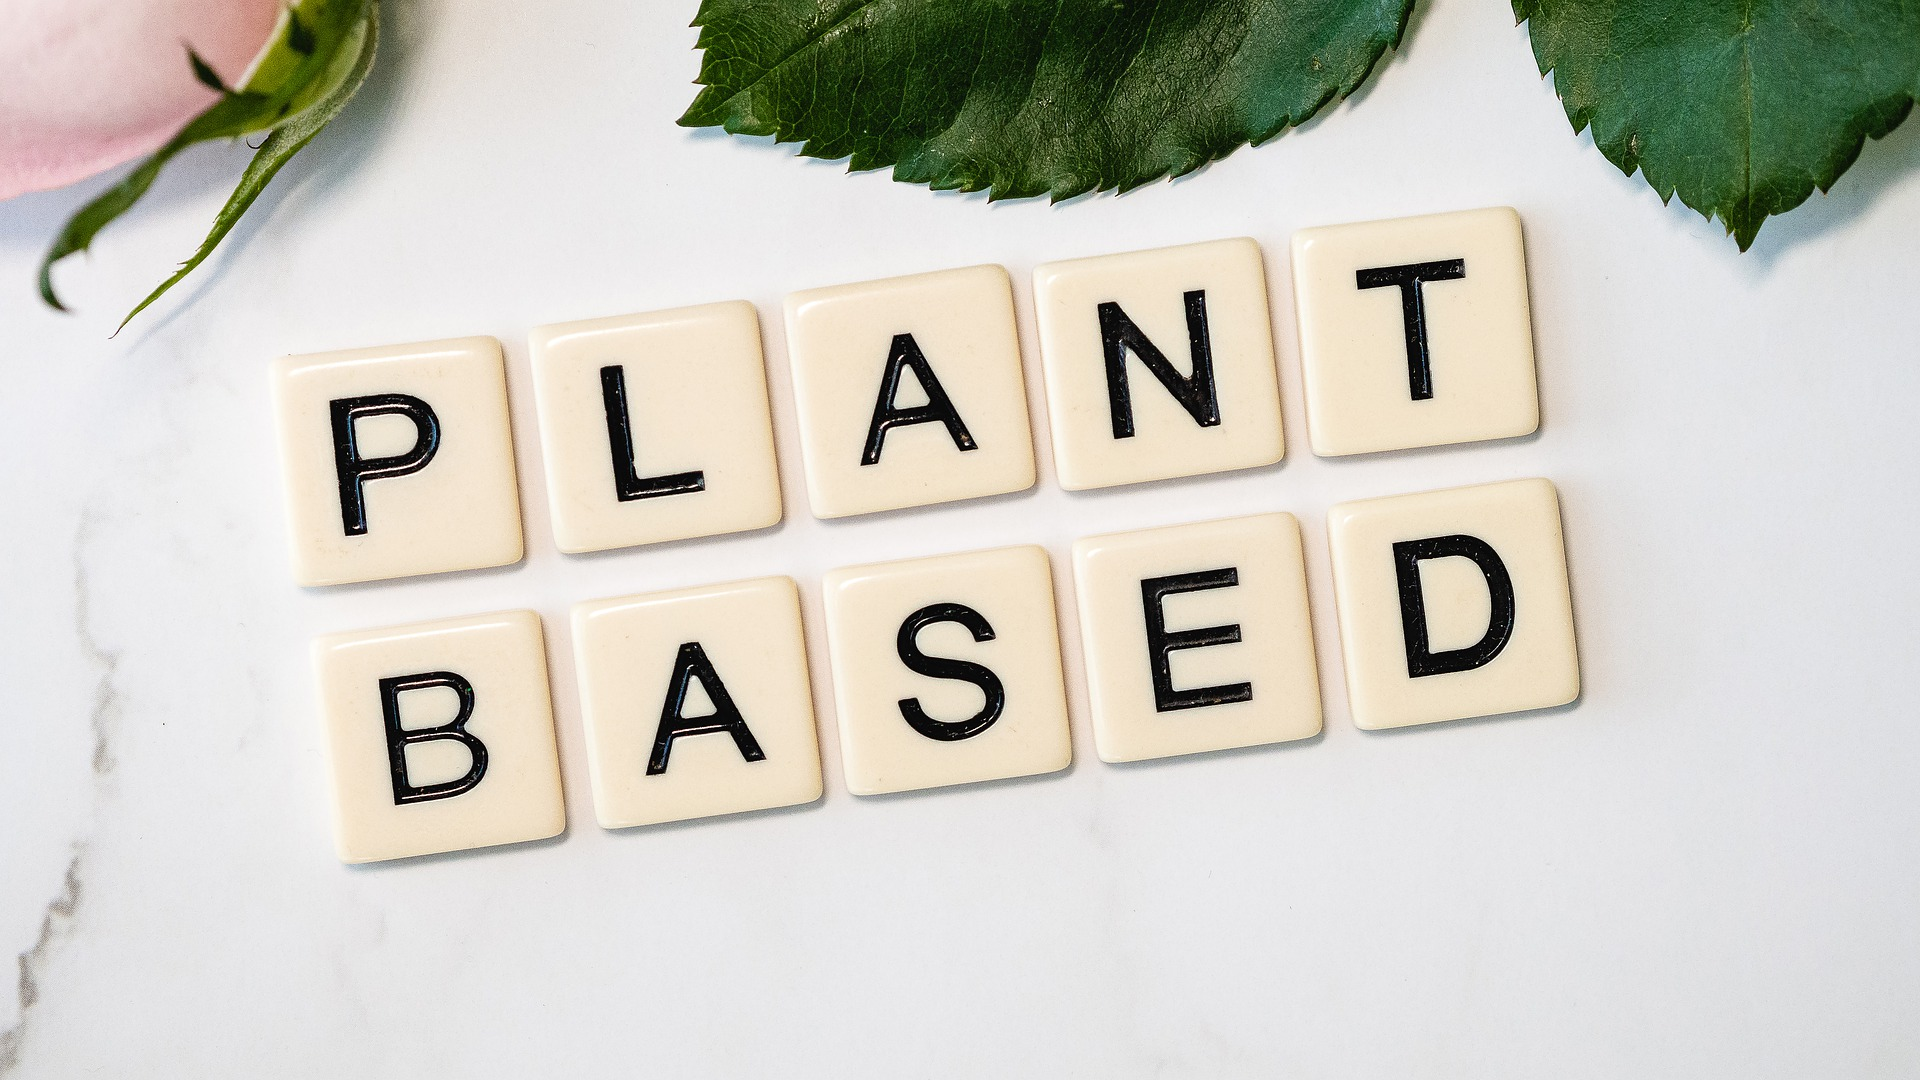 Is going plant-based a healthier option?